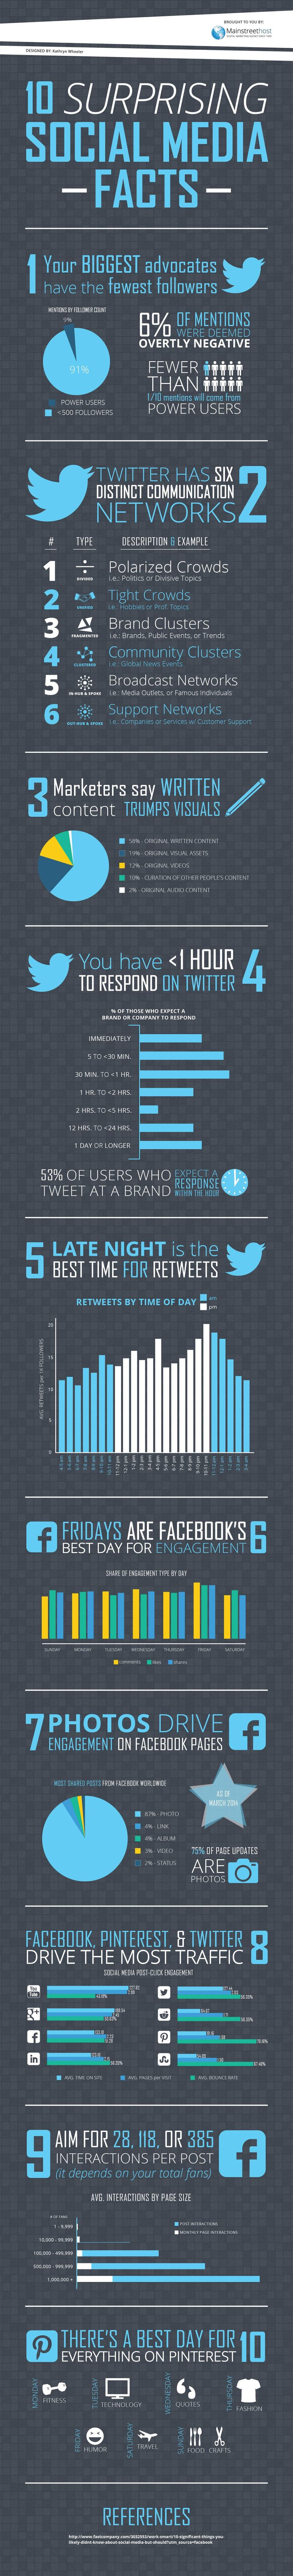 Infographie 134 - 10 surprising social media facts